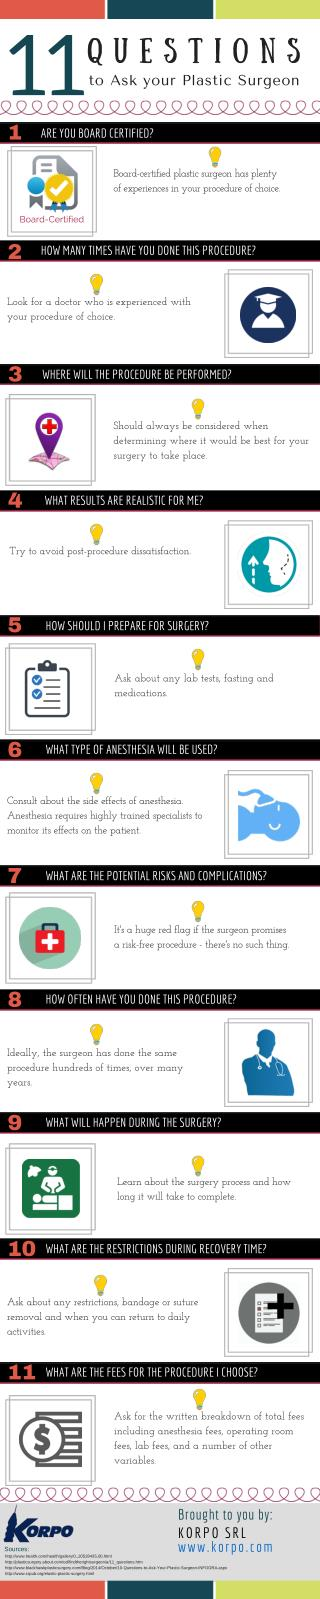 Infographic: 11 Questions to Ask your Plastic Surgeon